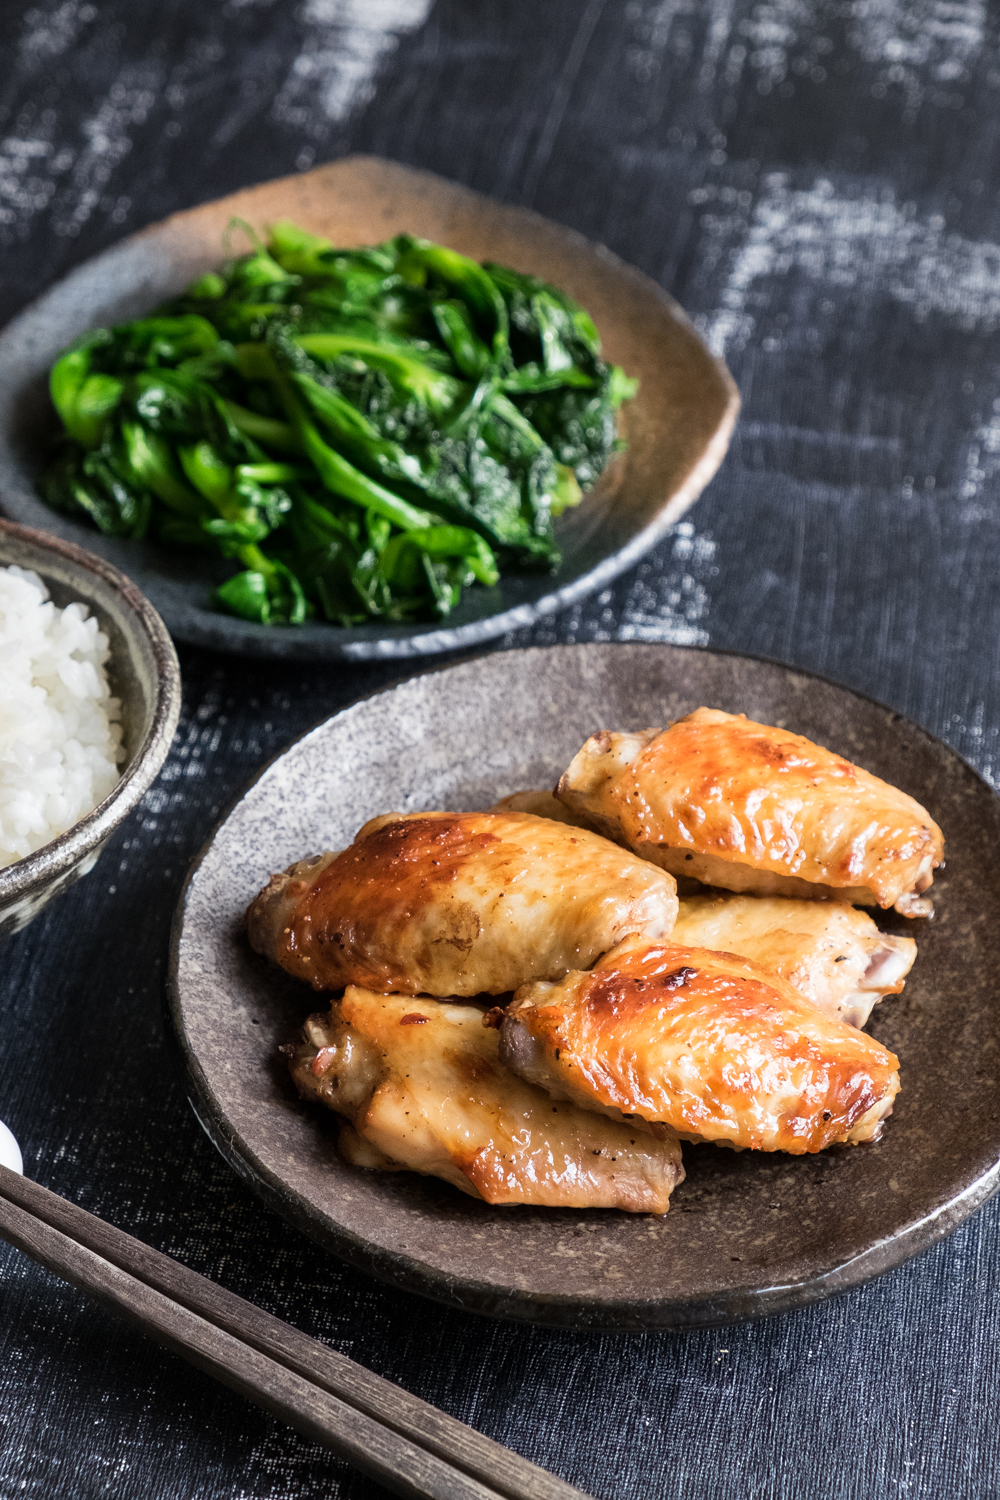 marinated-broiled-chicken-wings-2